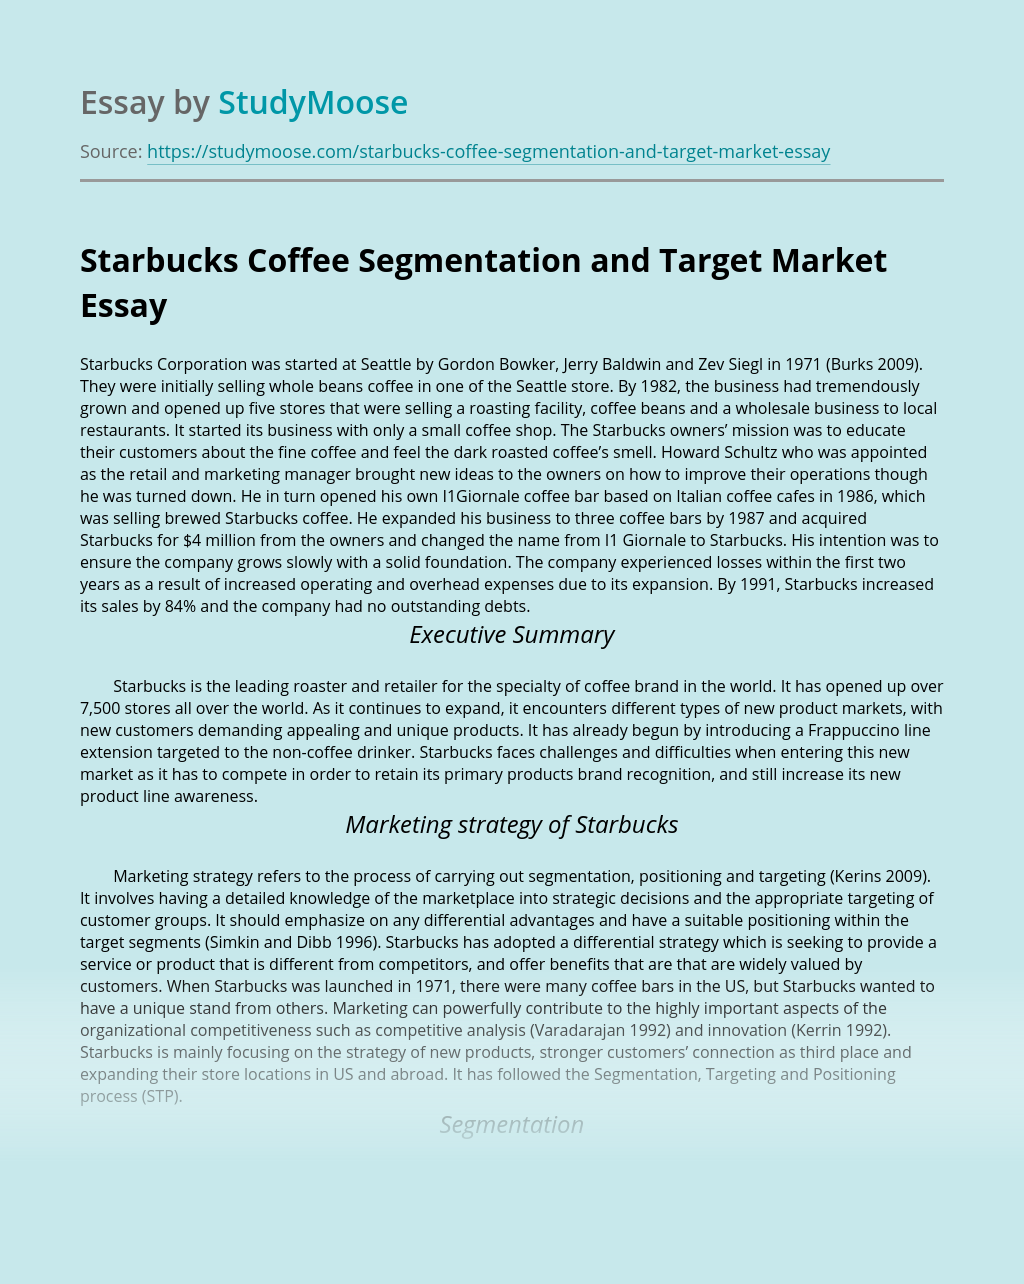 Starbucks Coffee Segmentation and Target Market